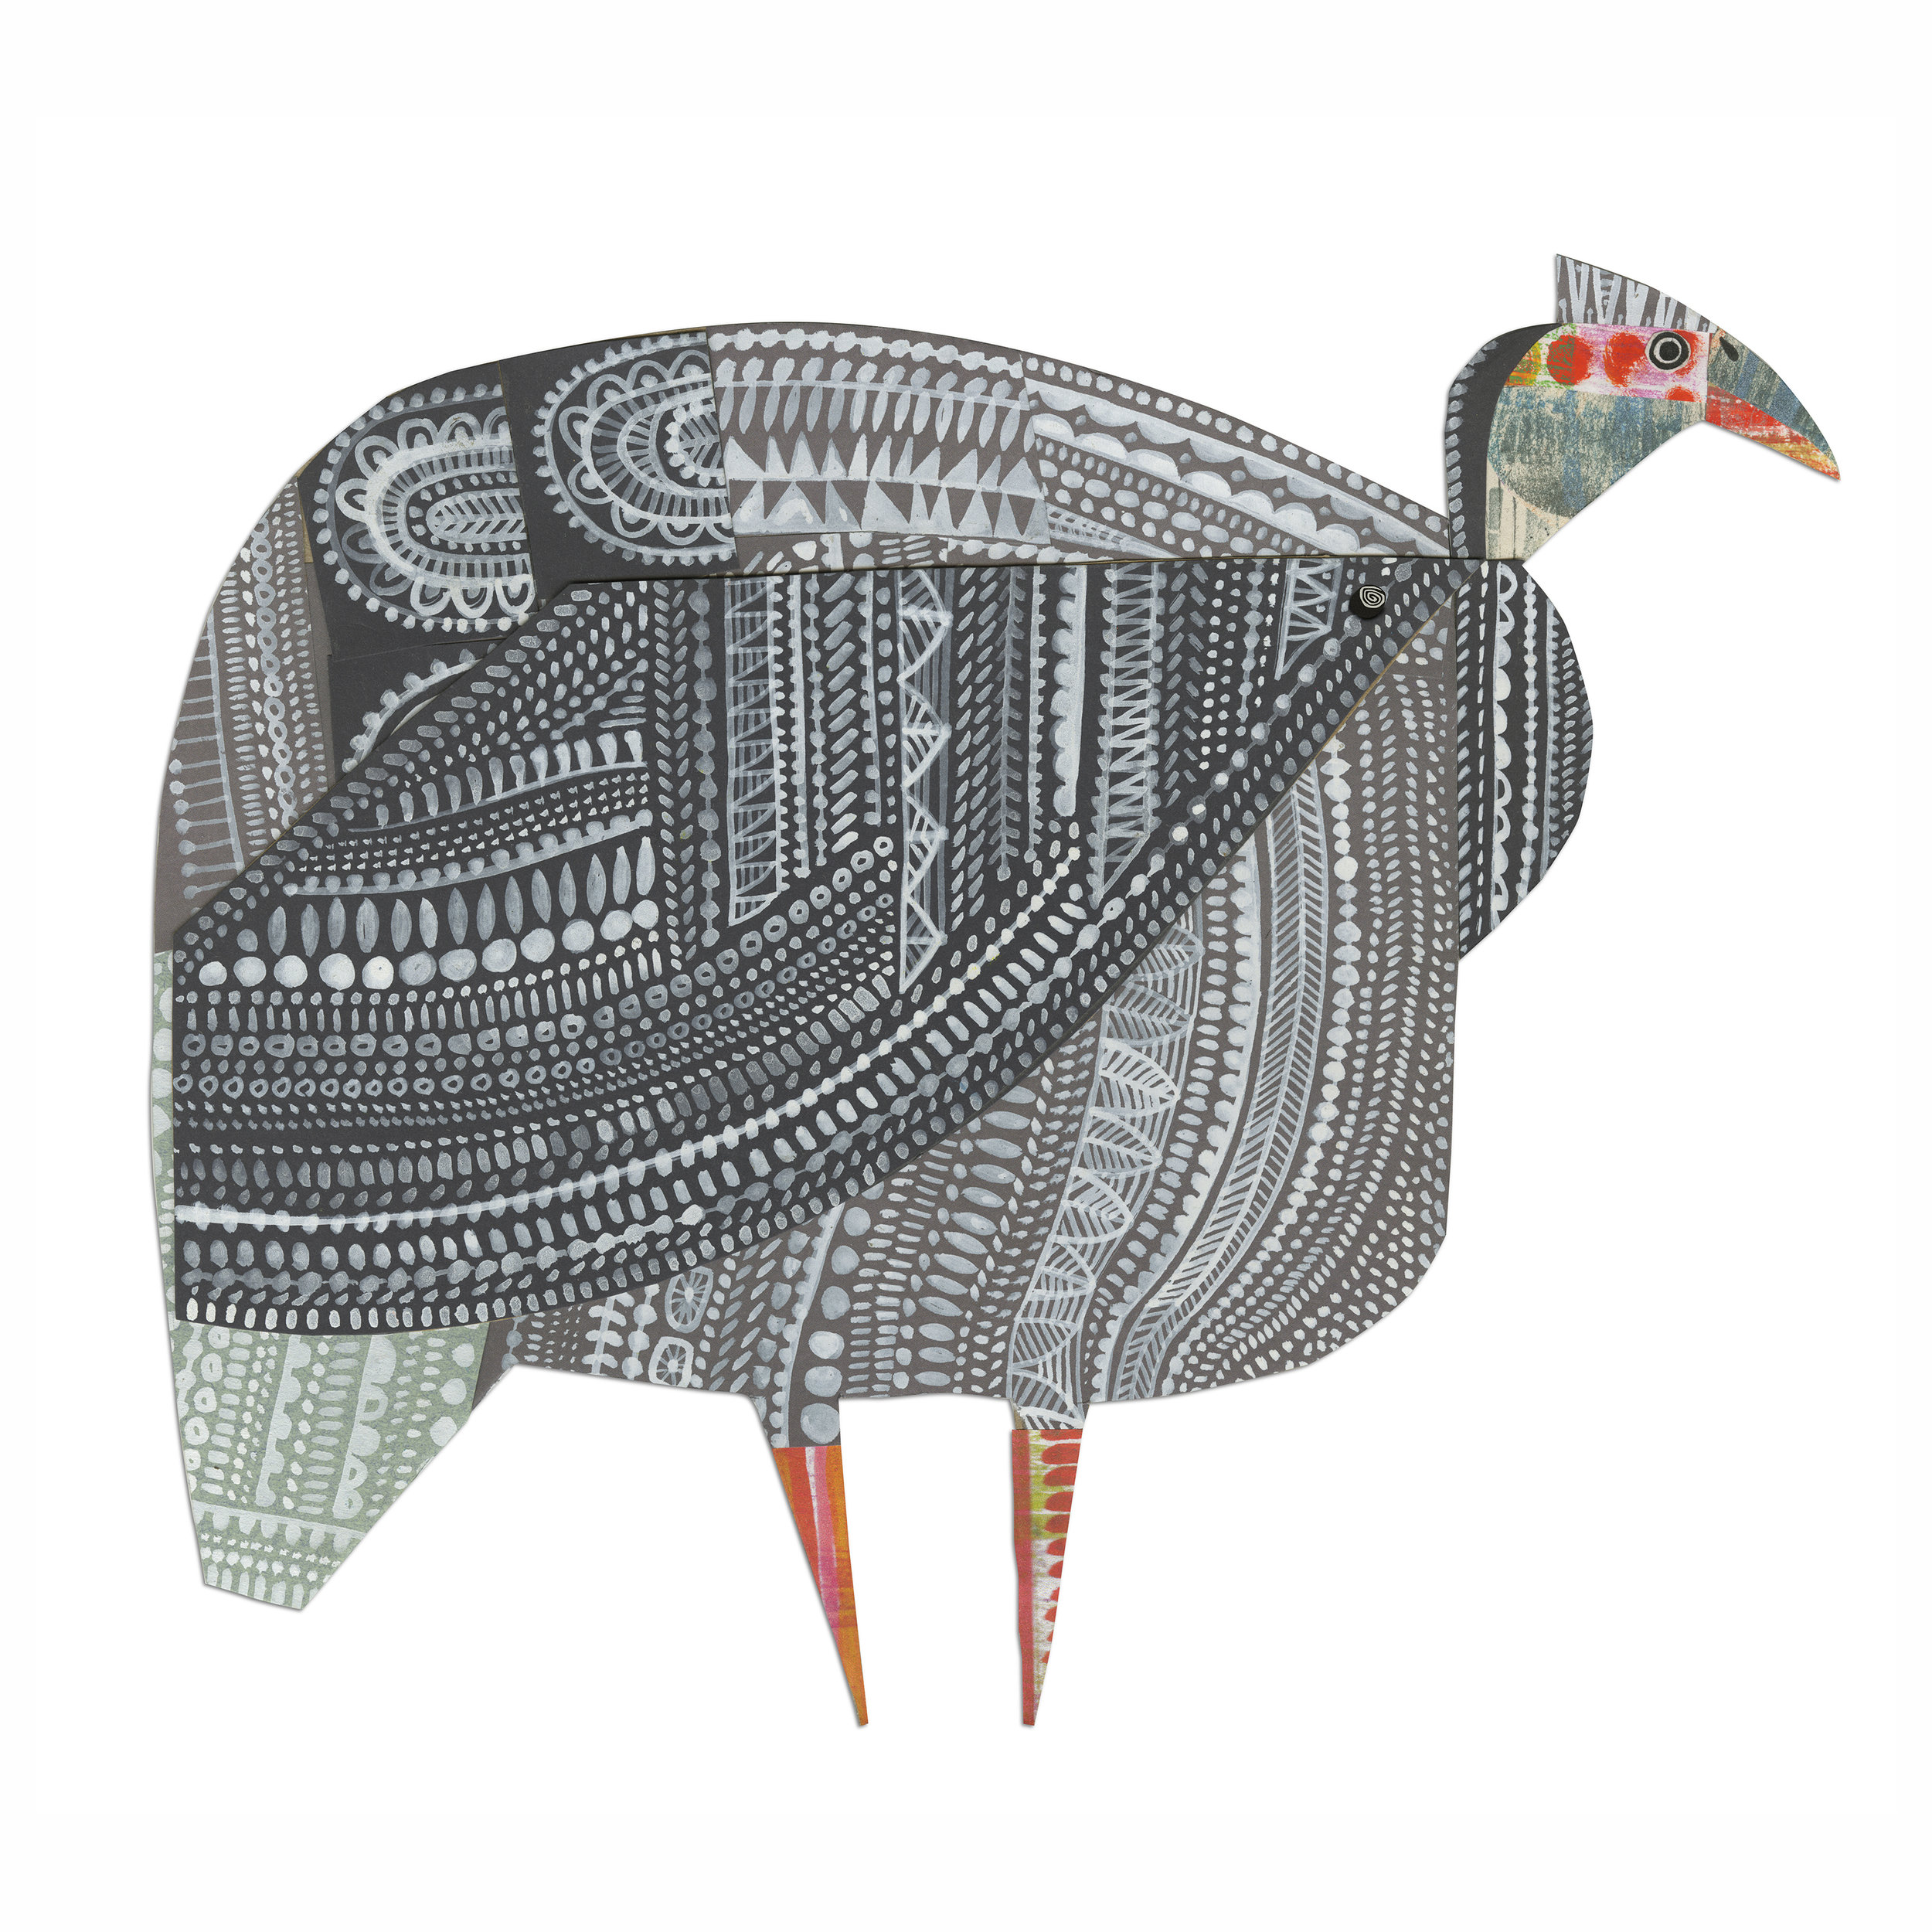 Guinea fowl   from forthcoming  animal parade  book